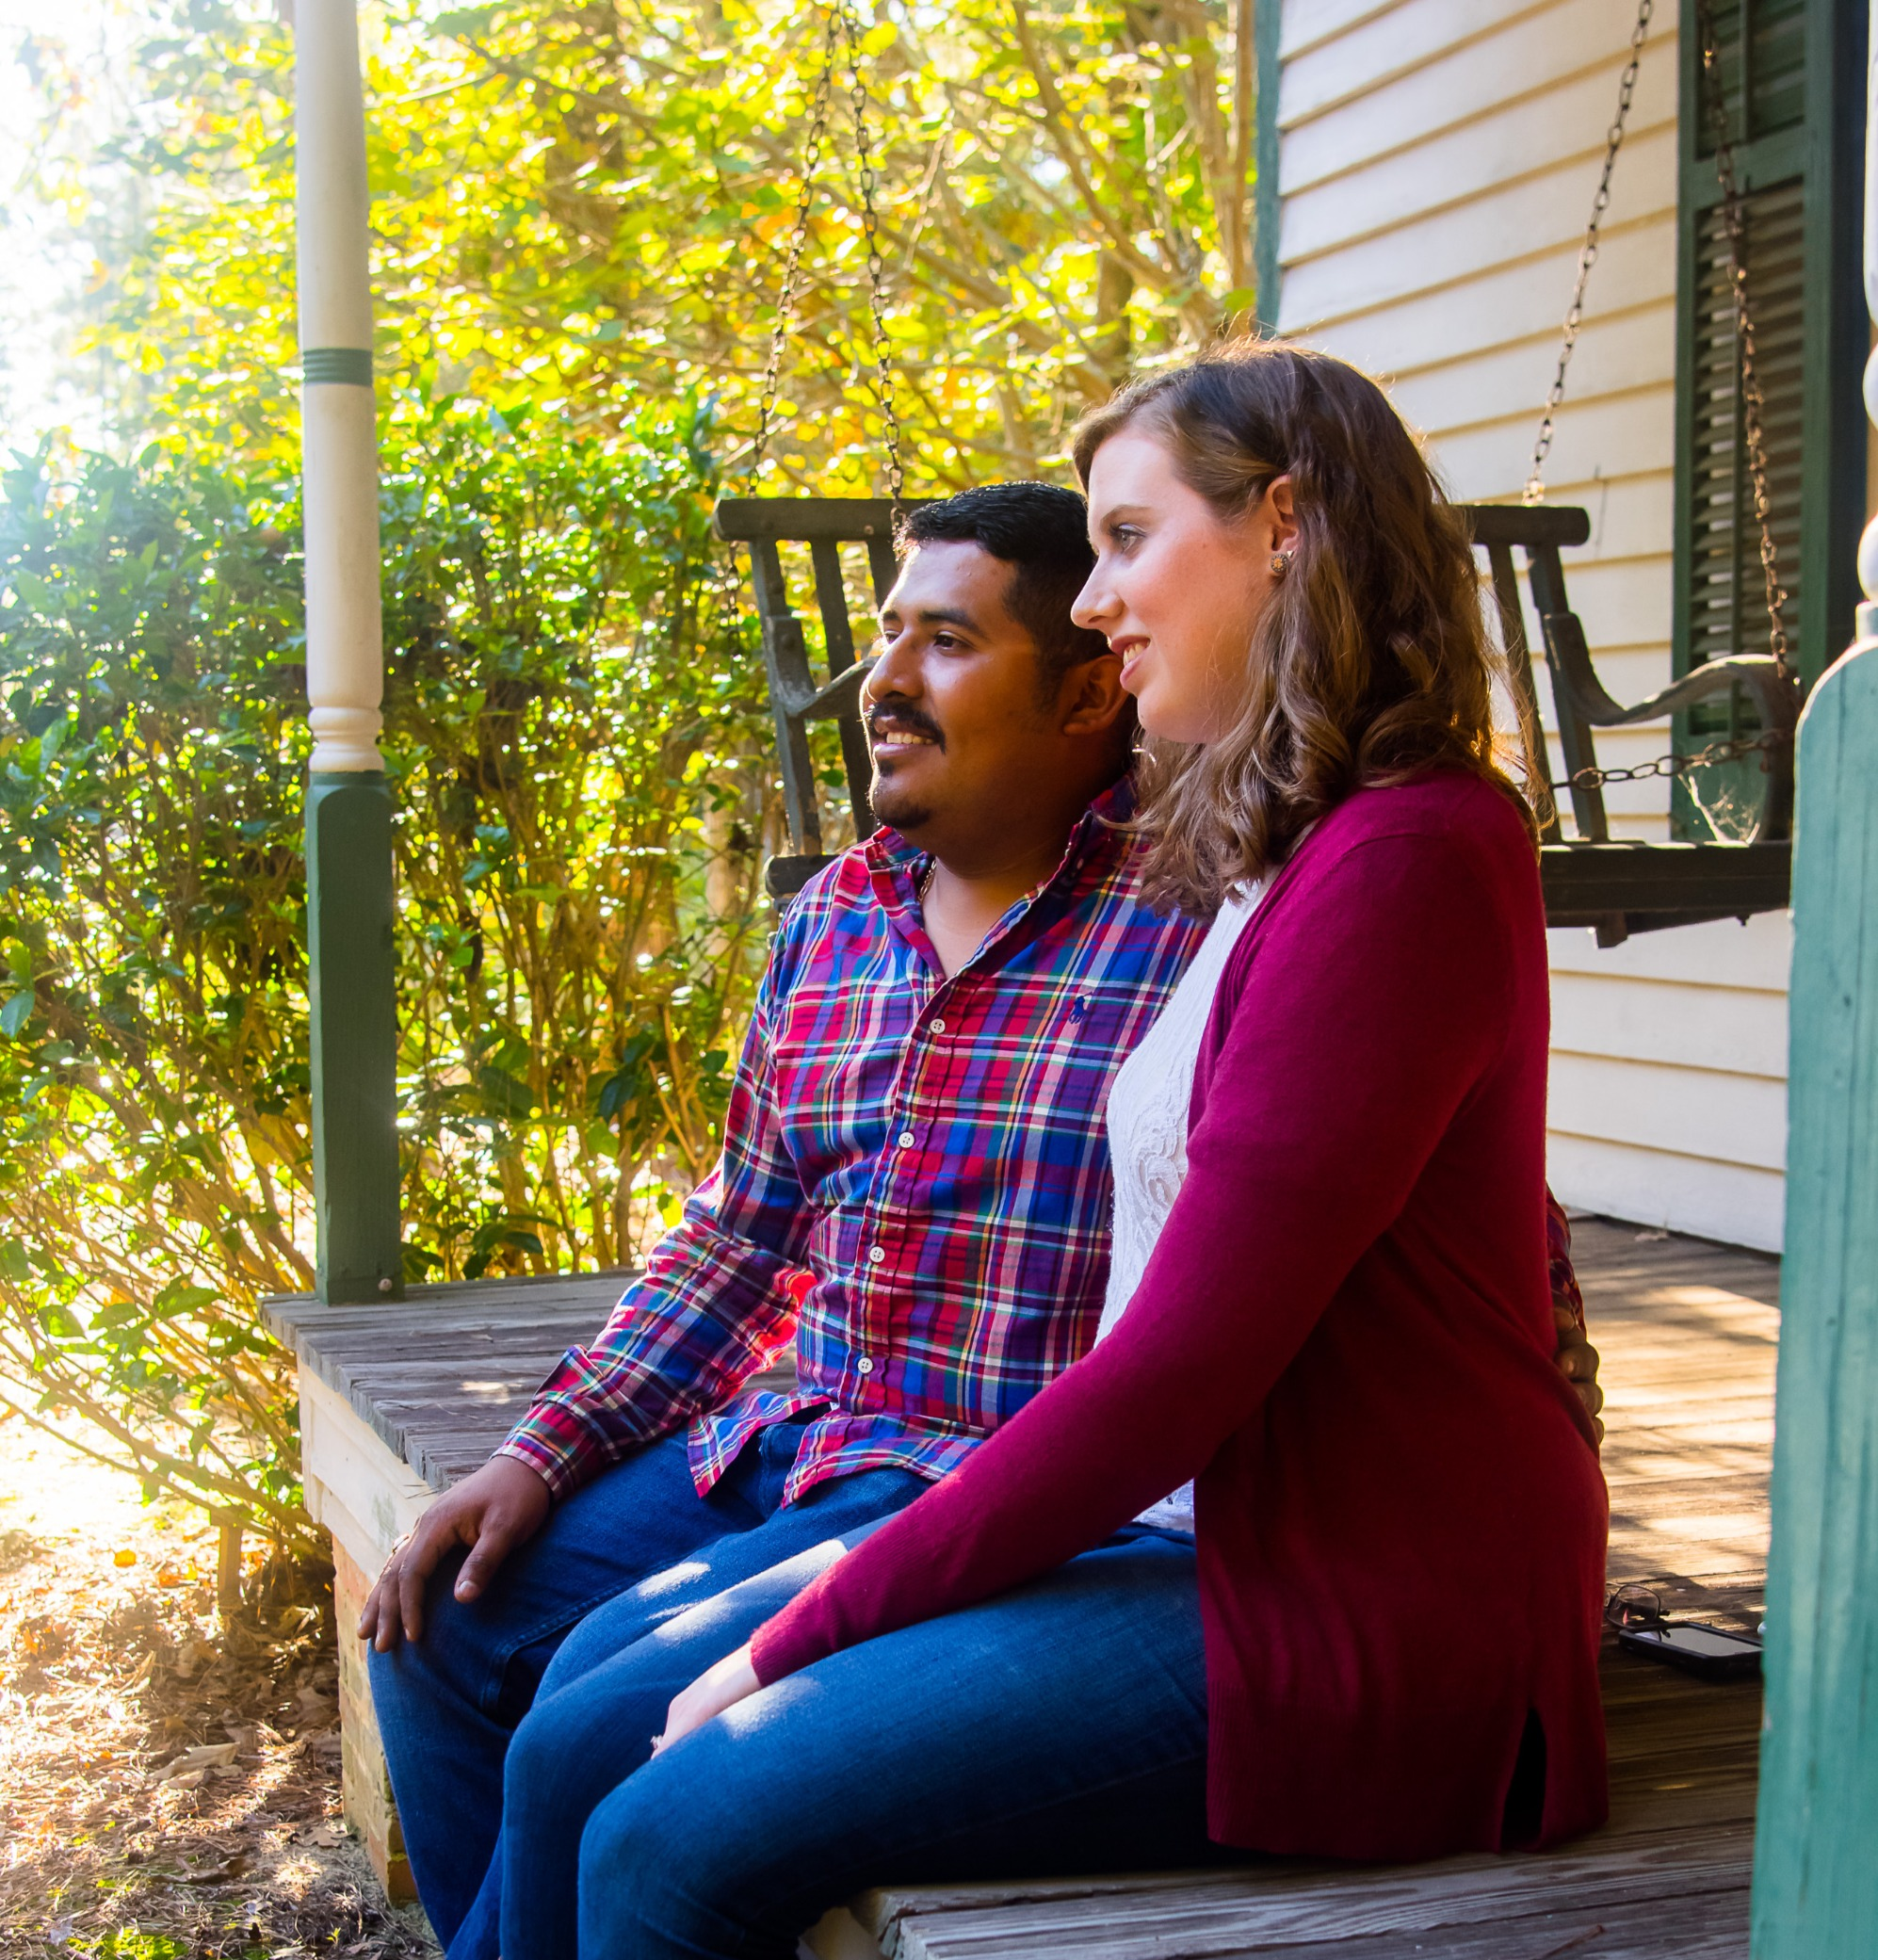 Two people sitting on historic porch